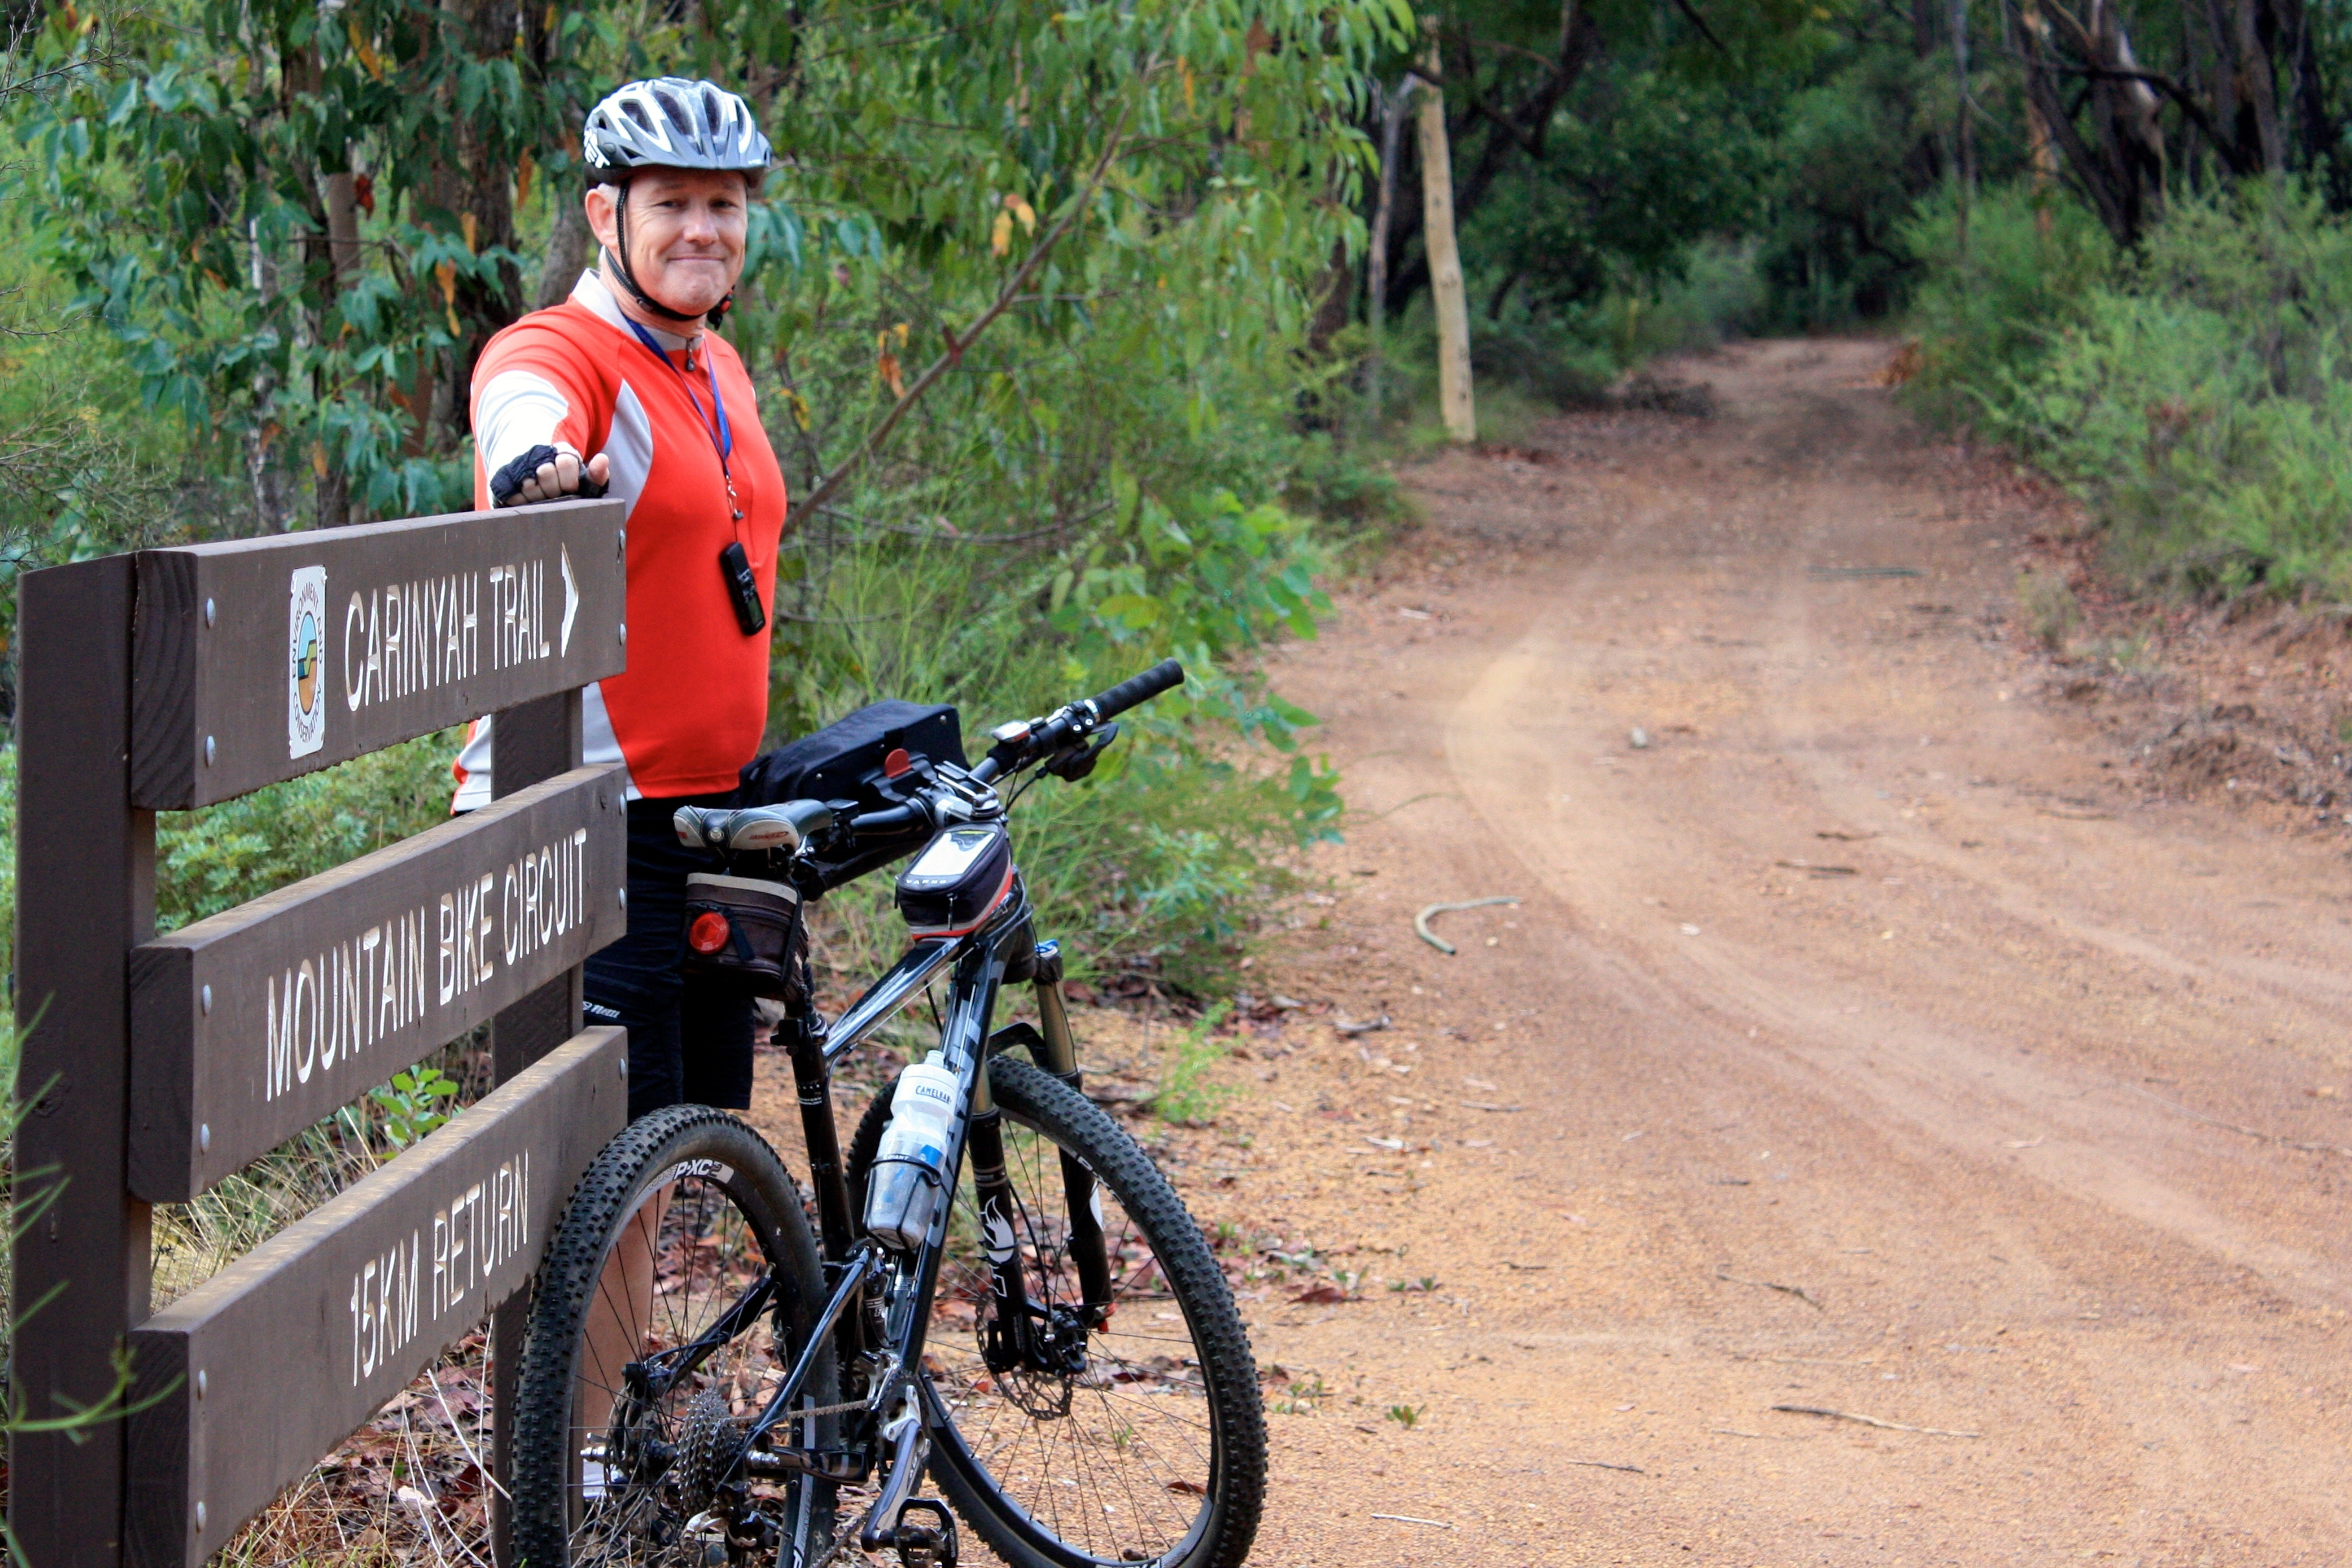 Me and the sign at the Trail Head